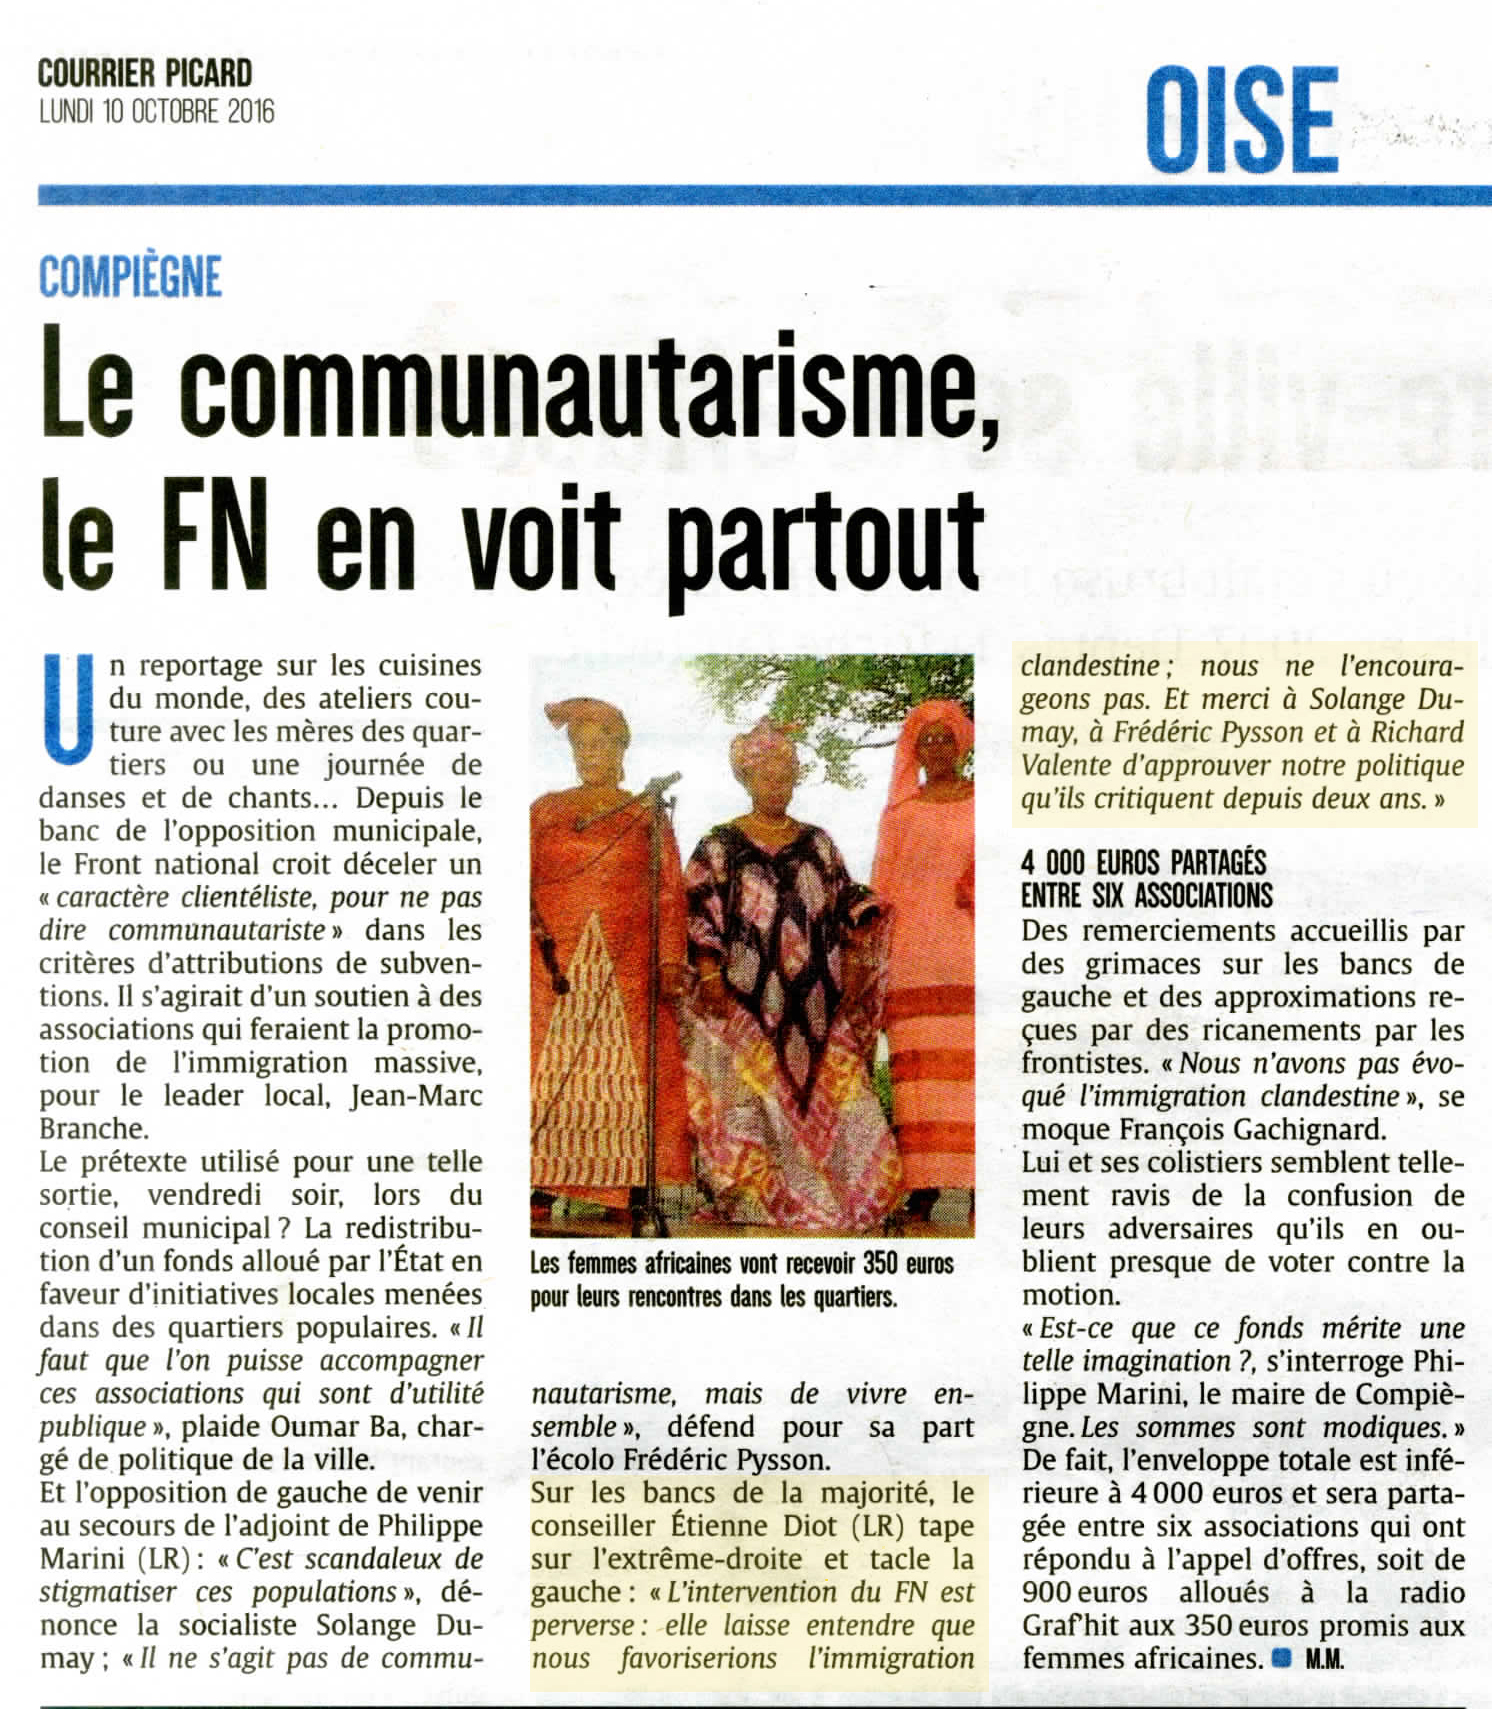 courrier-picard-10-octobre-2016-compiegne